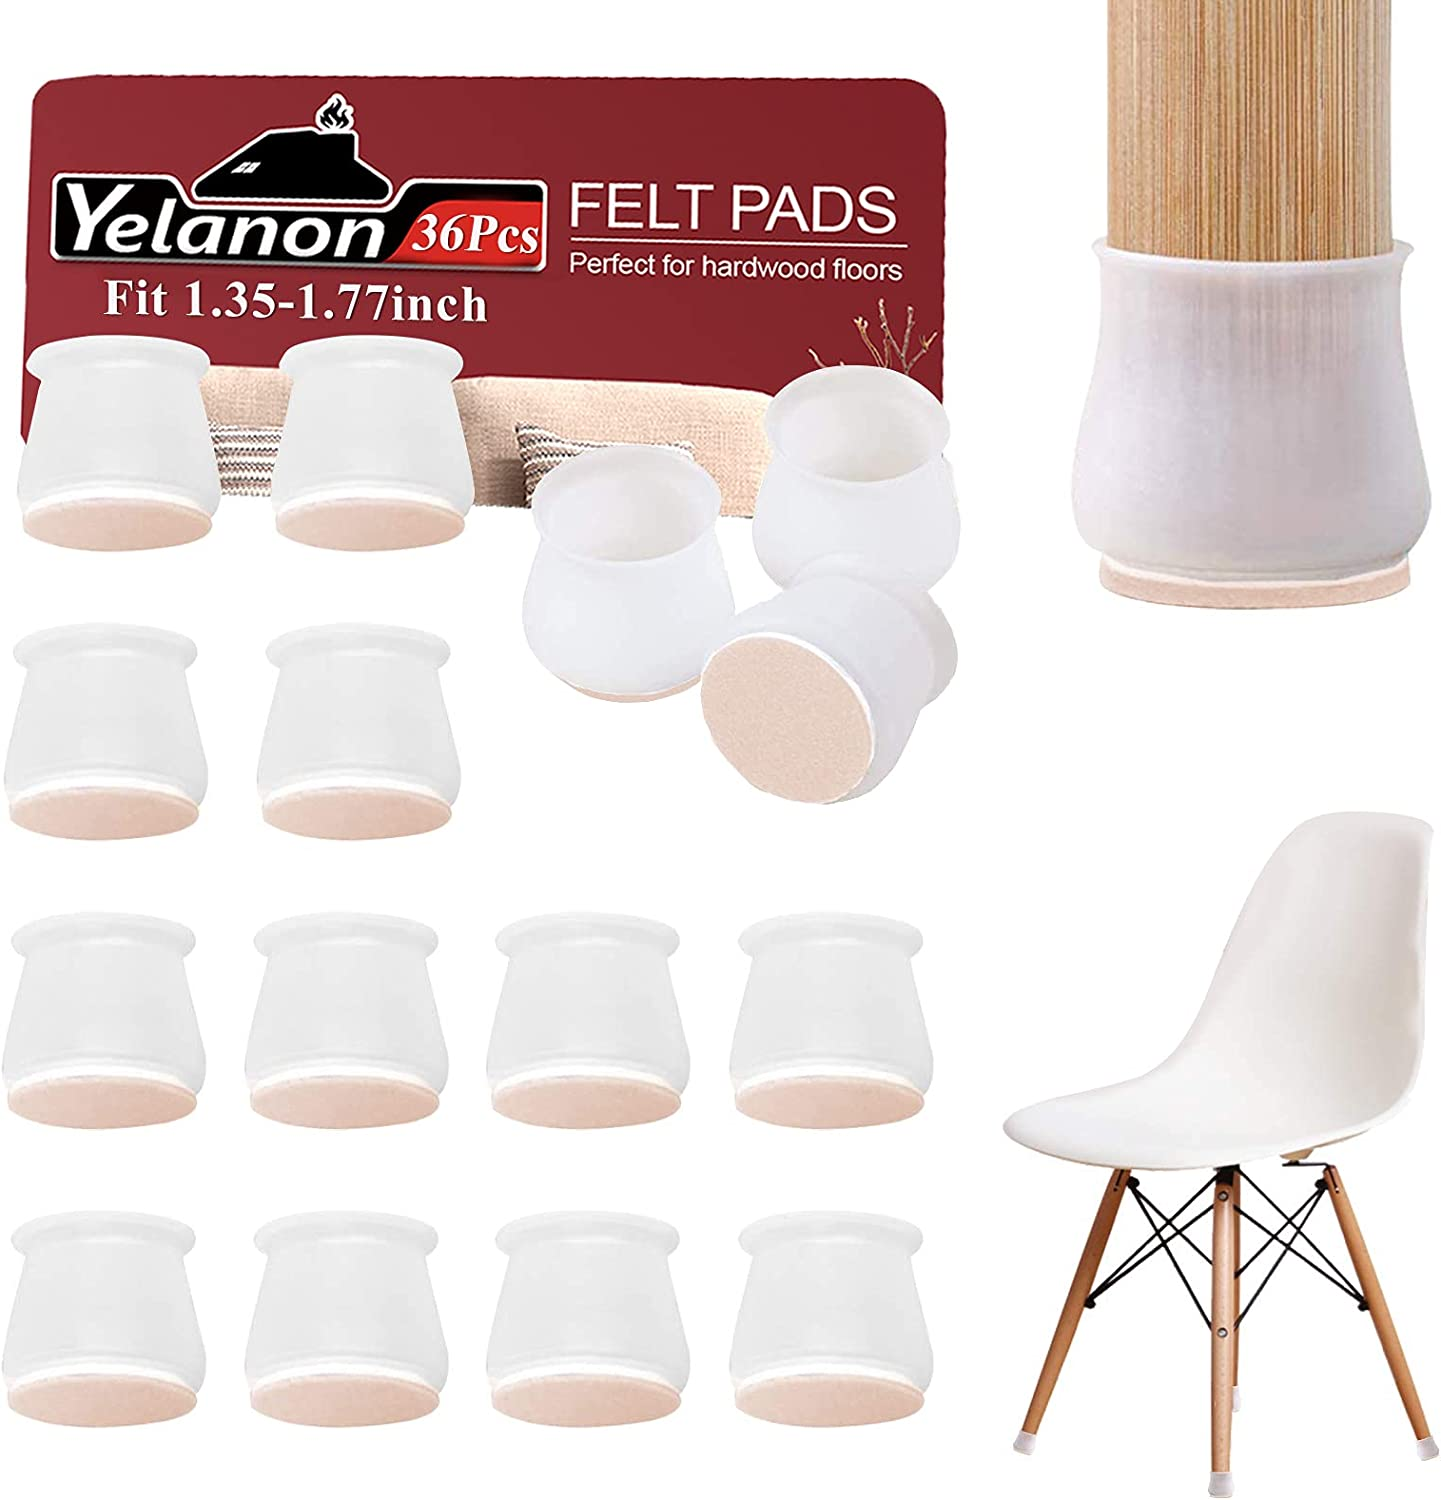 Yelanon Furniture Silicon Protection Covers 36 Pcs - Upgraded Chair Leg Floor Protectors - Chair Leg Caps with Felt Pad Anti Scratch Floor Protector for Furniture Table Feet, Protect Hardwood Floor